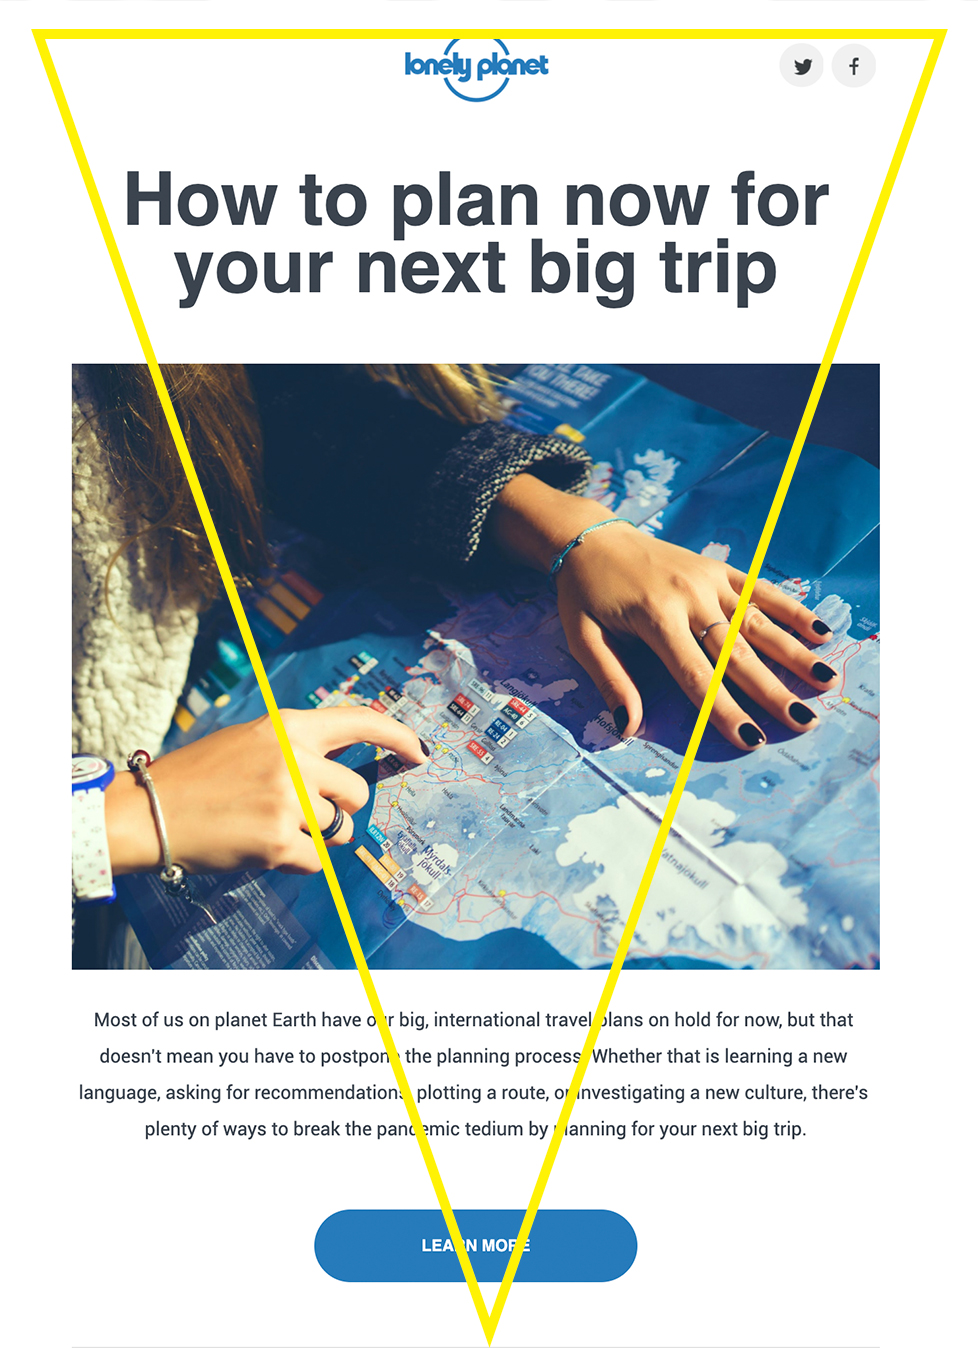 tourism marketing email